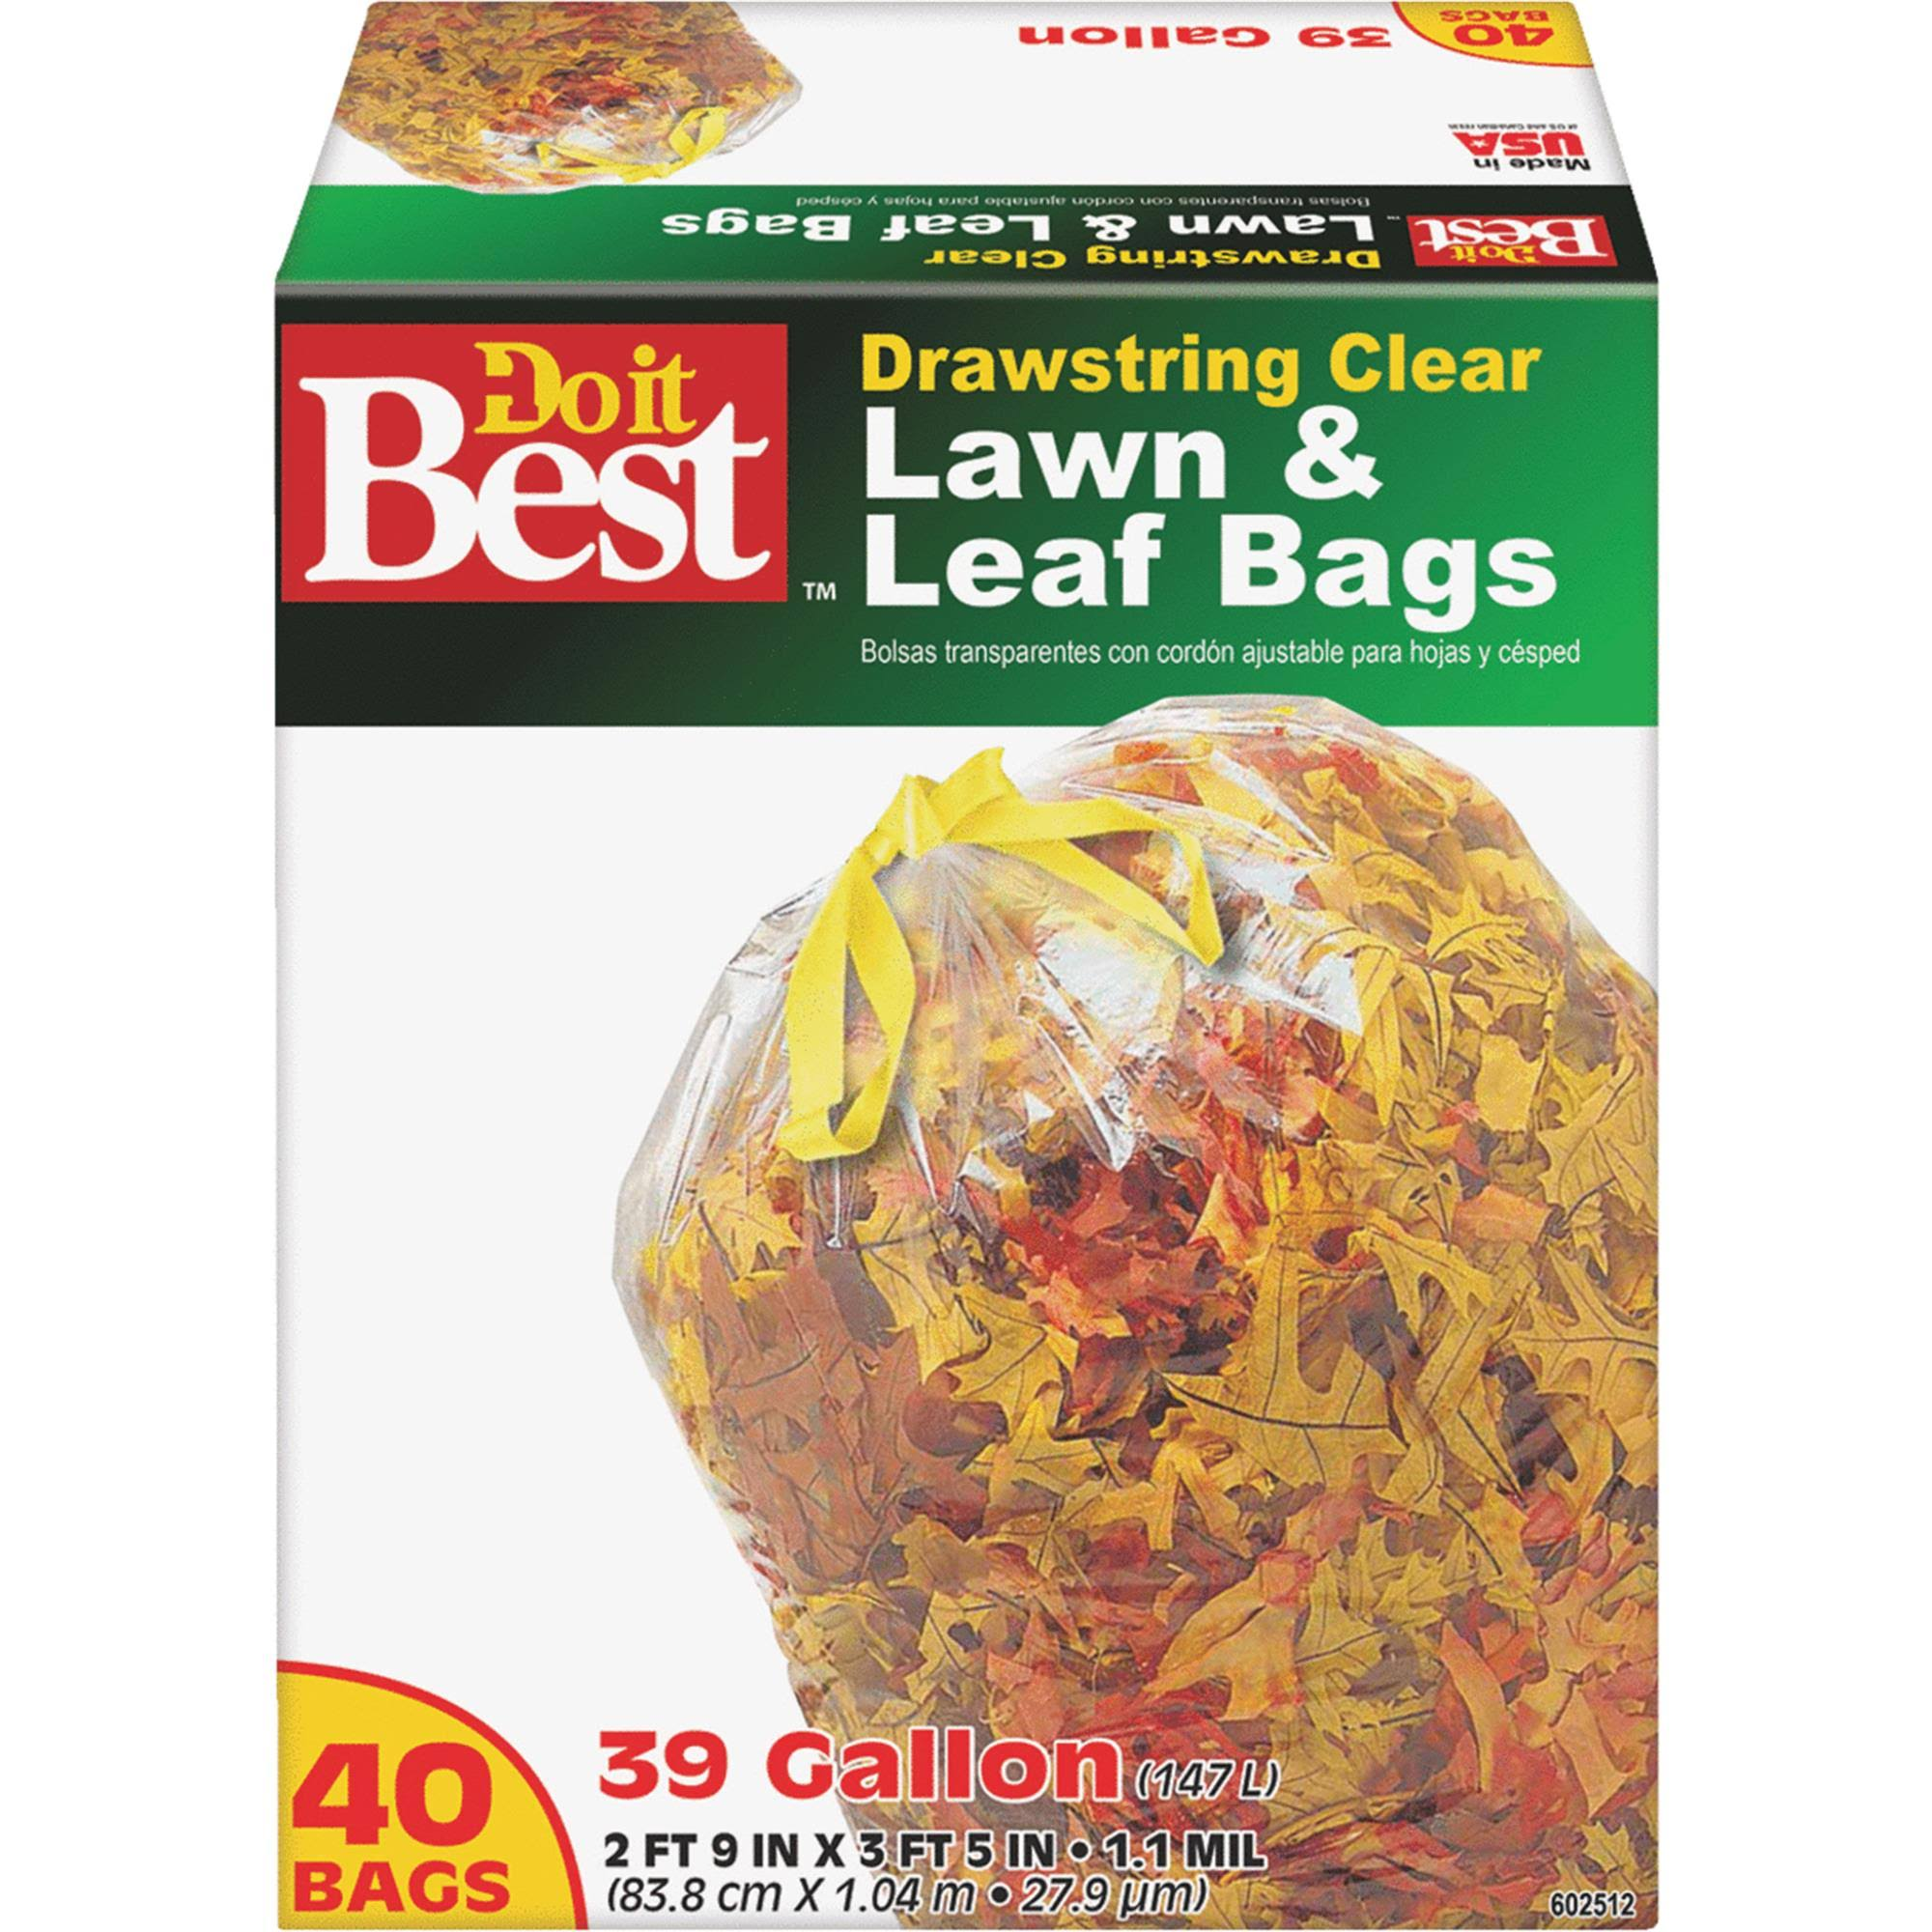 Do it Best 602512 Drawstring Lawn and Leaf Bag - 39 Gallon, 40 Bags